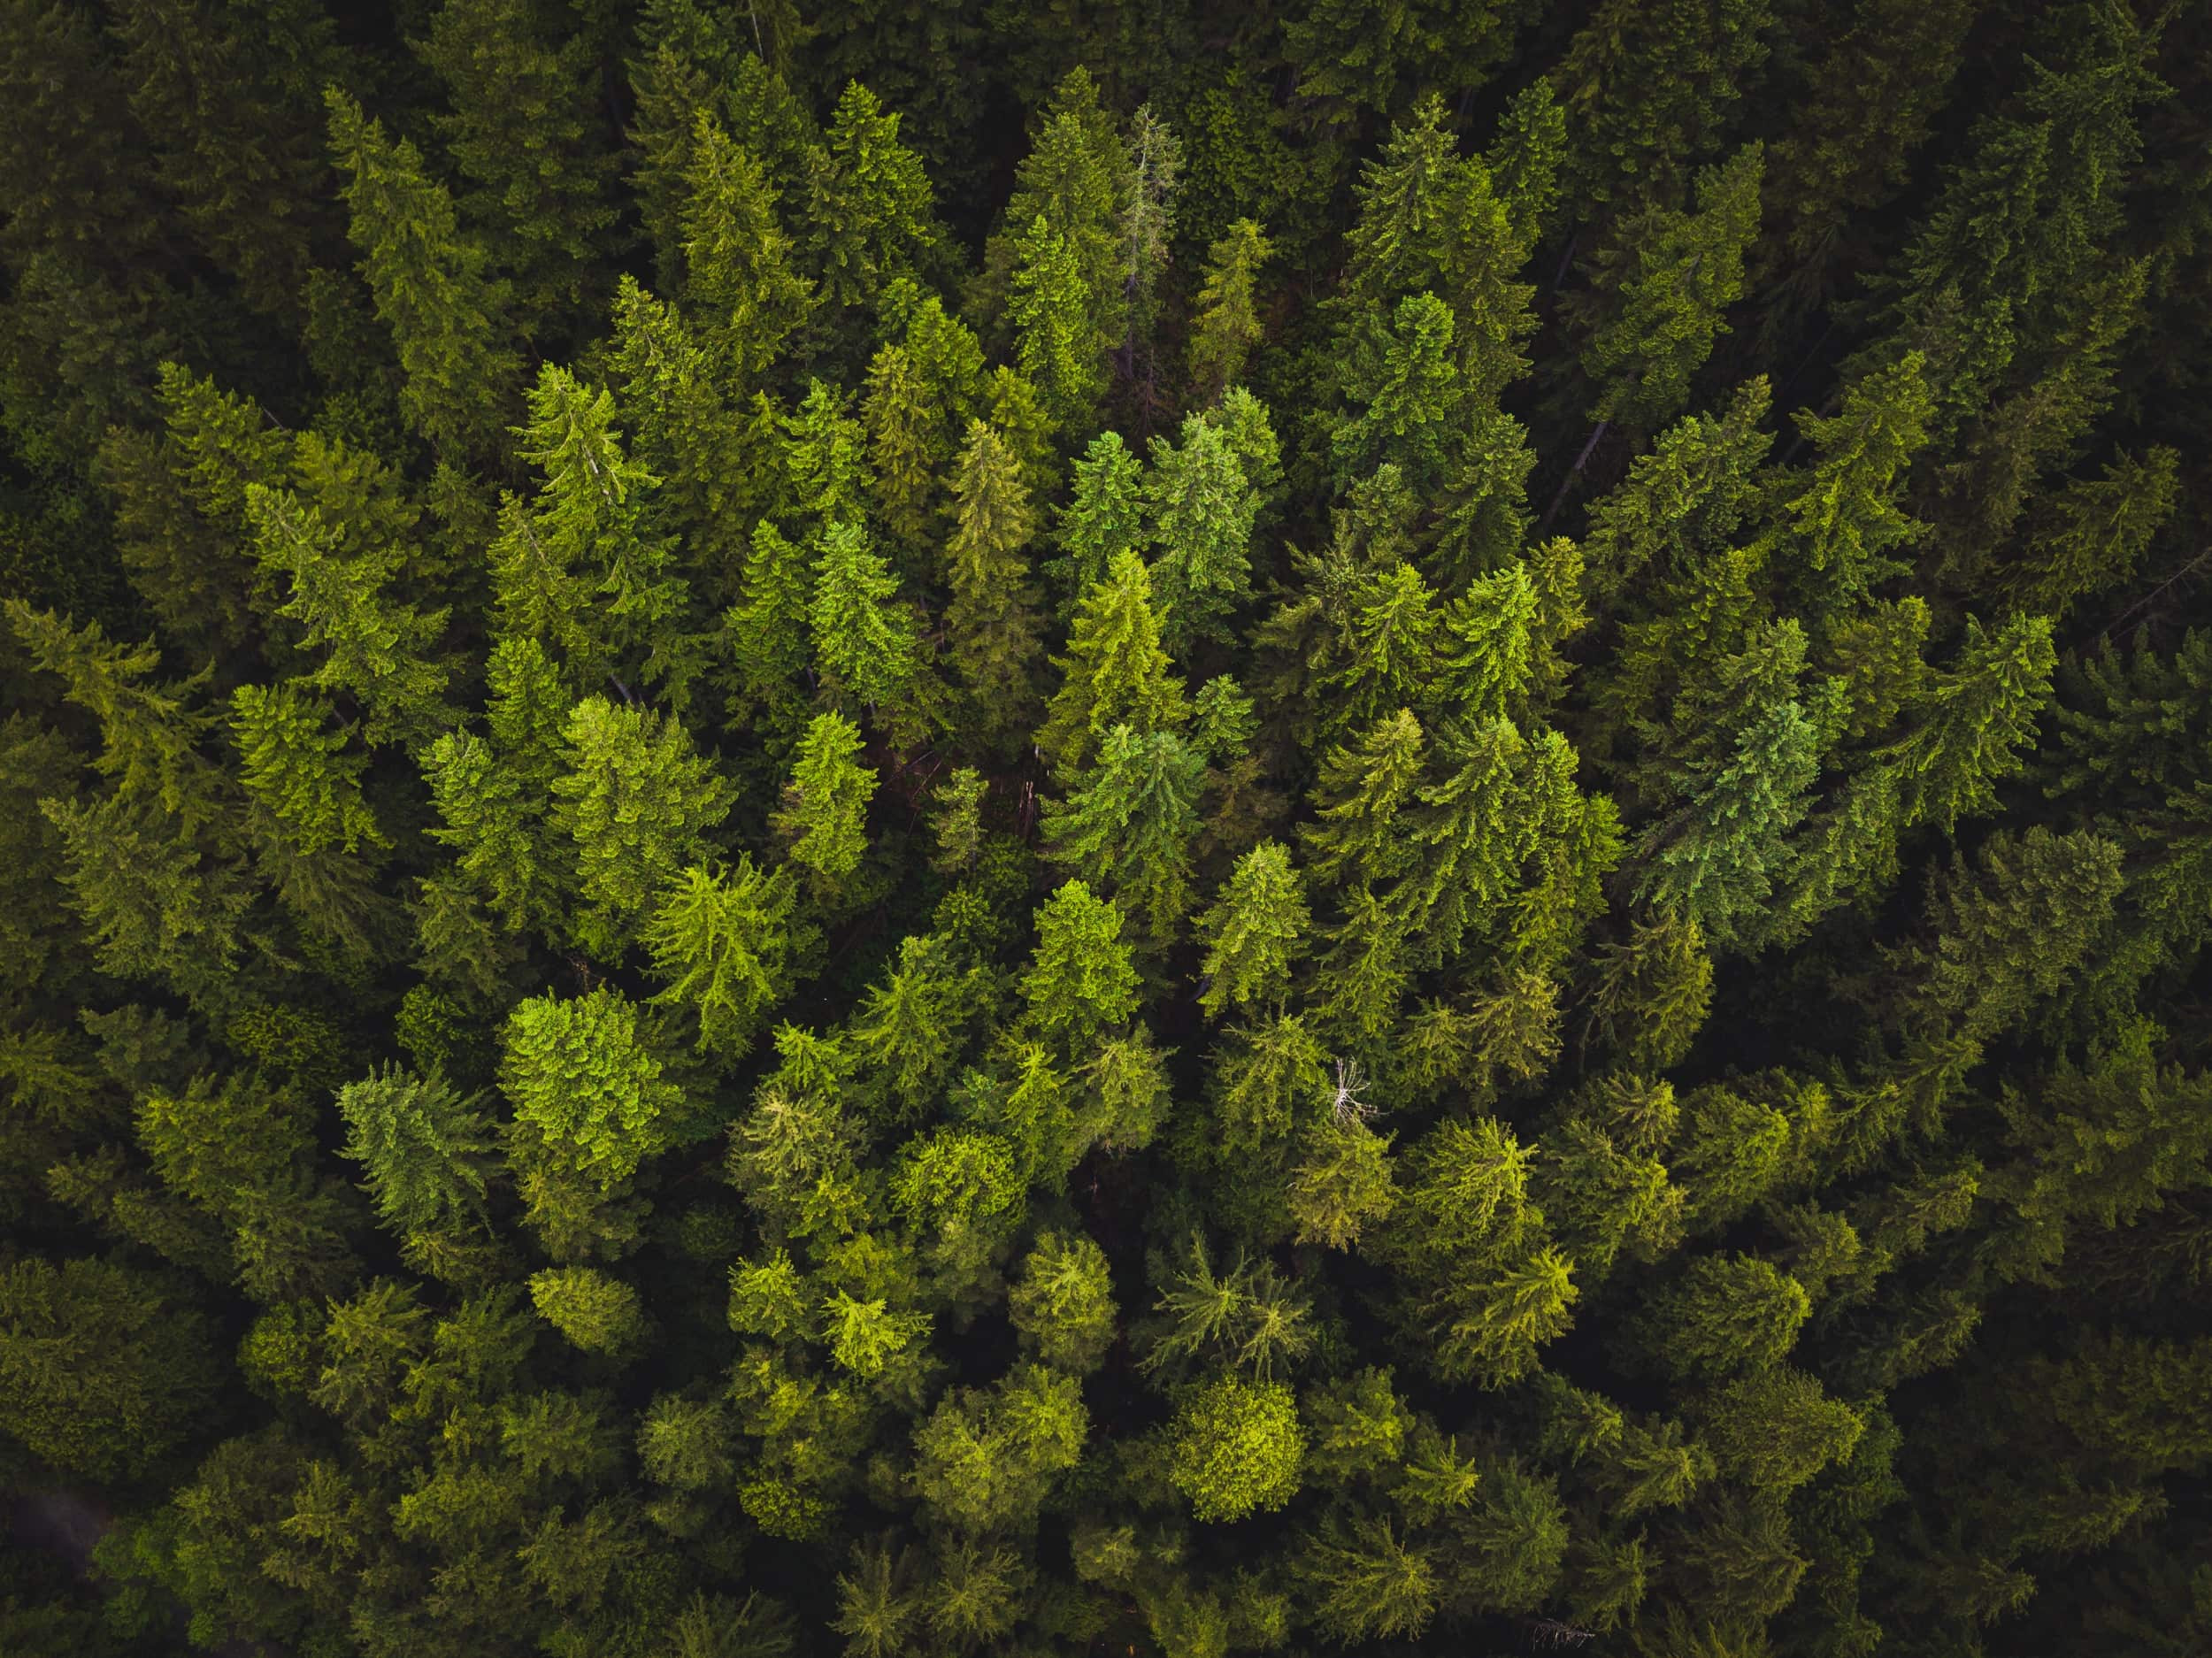 A green forest from an aerial view.